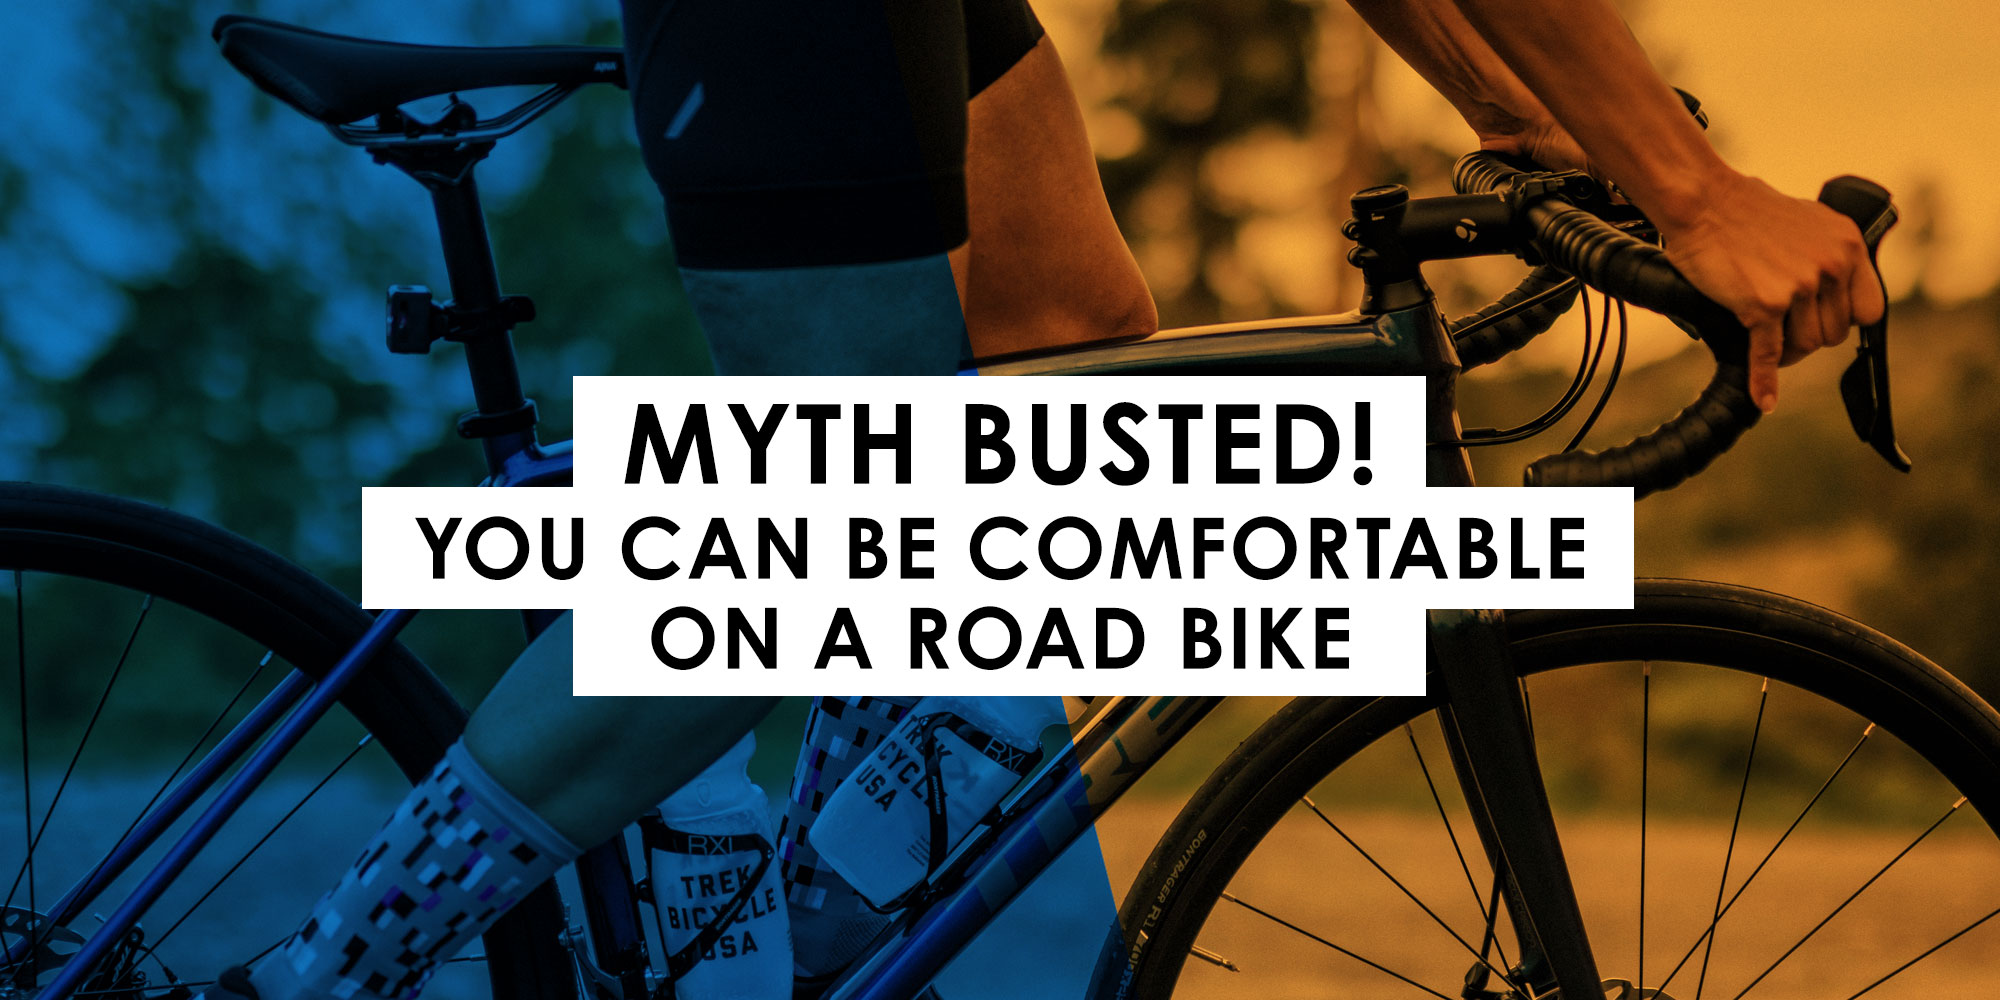 Myth BUSTED! You CAN be comfortable on a road bike